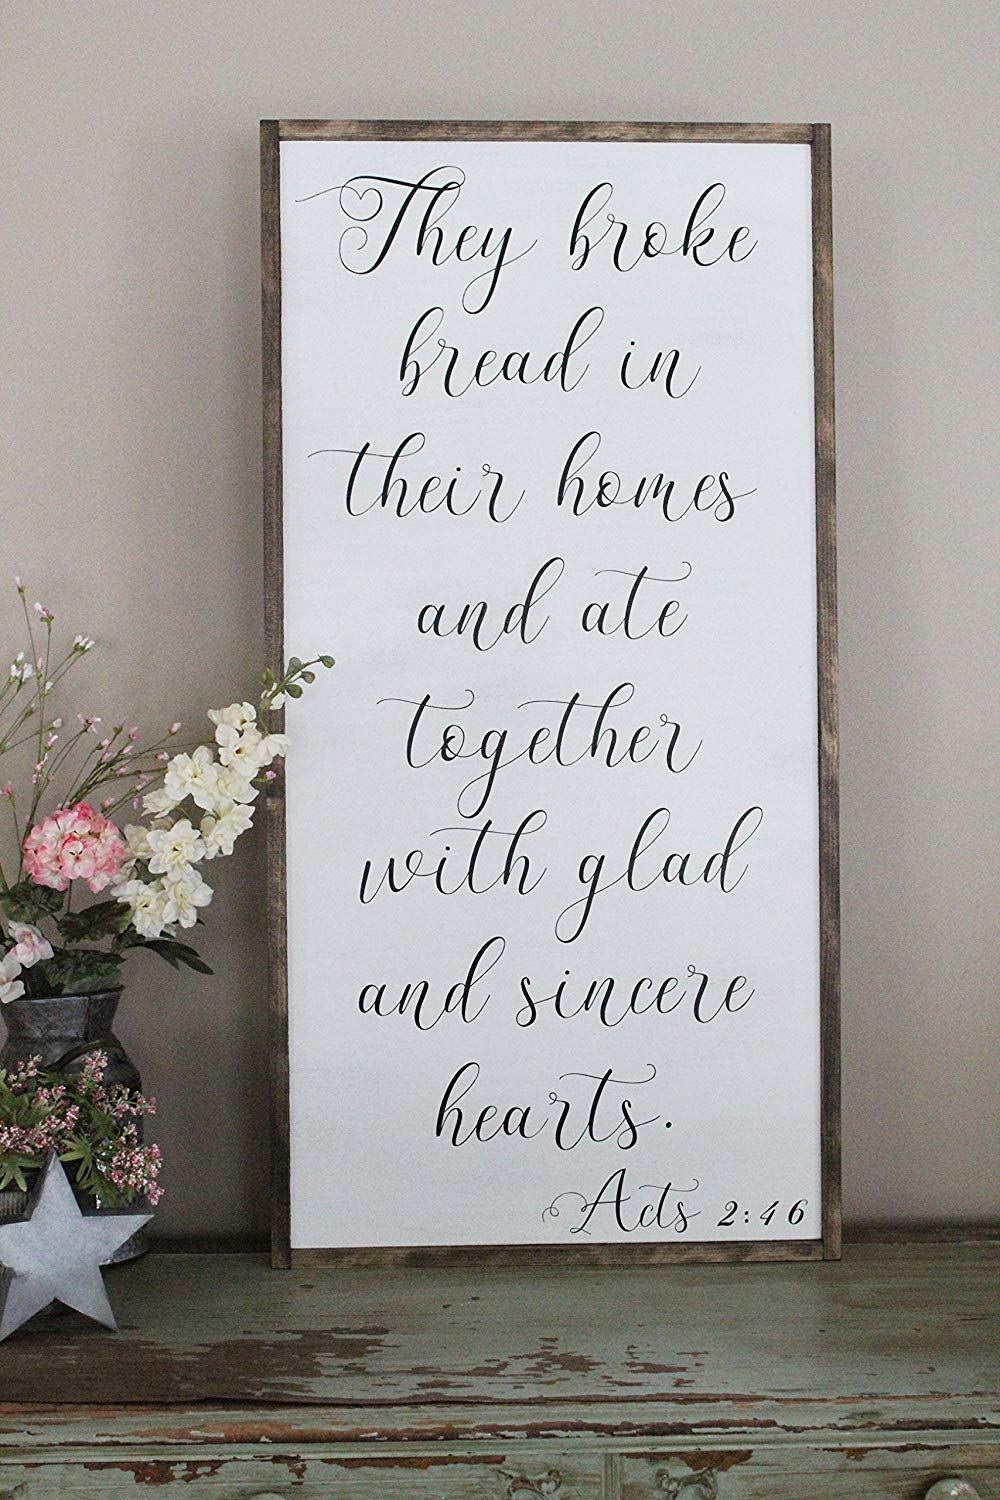 They Broke Bread In Their Homes And Ate Together Wall Art/Hand Painted Sign/Farmhouse Decor/Wall Decor/Home Decor/Modern Artwork/Large Framed Artwork